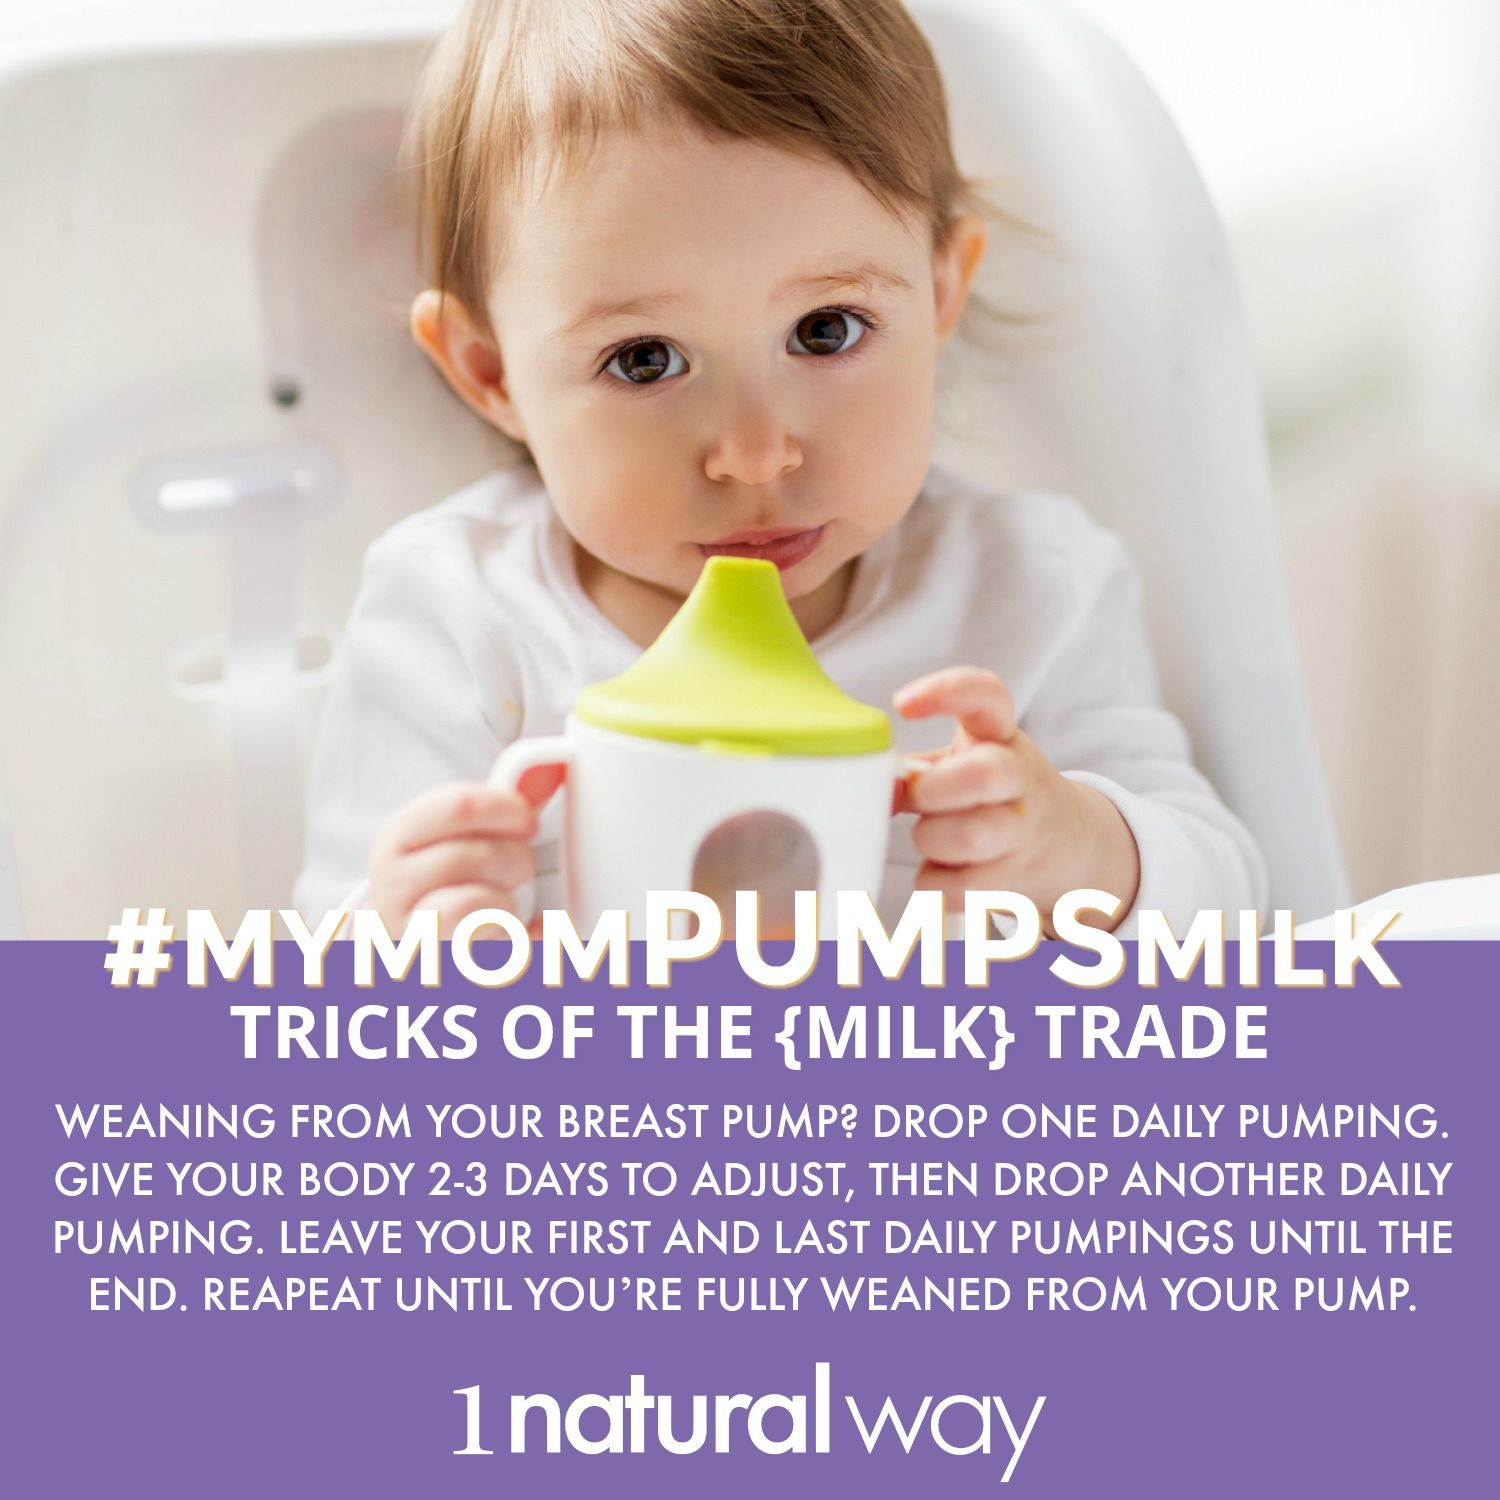 Breastfeeding And Pumping Tips For New Moms Mymompumpsmilk